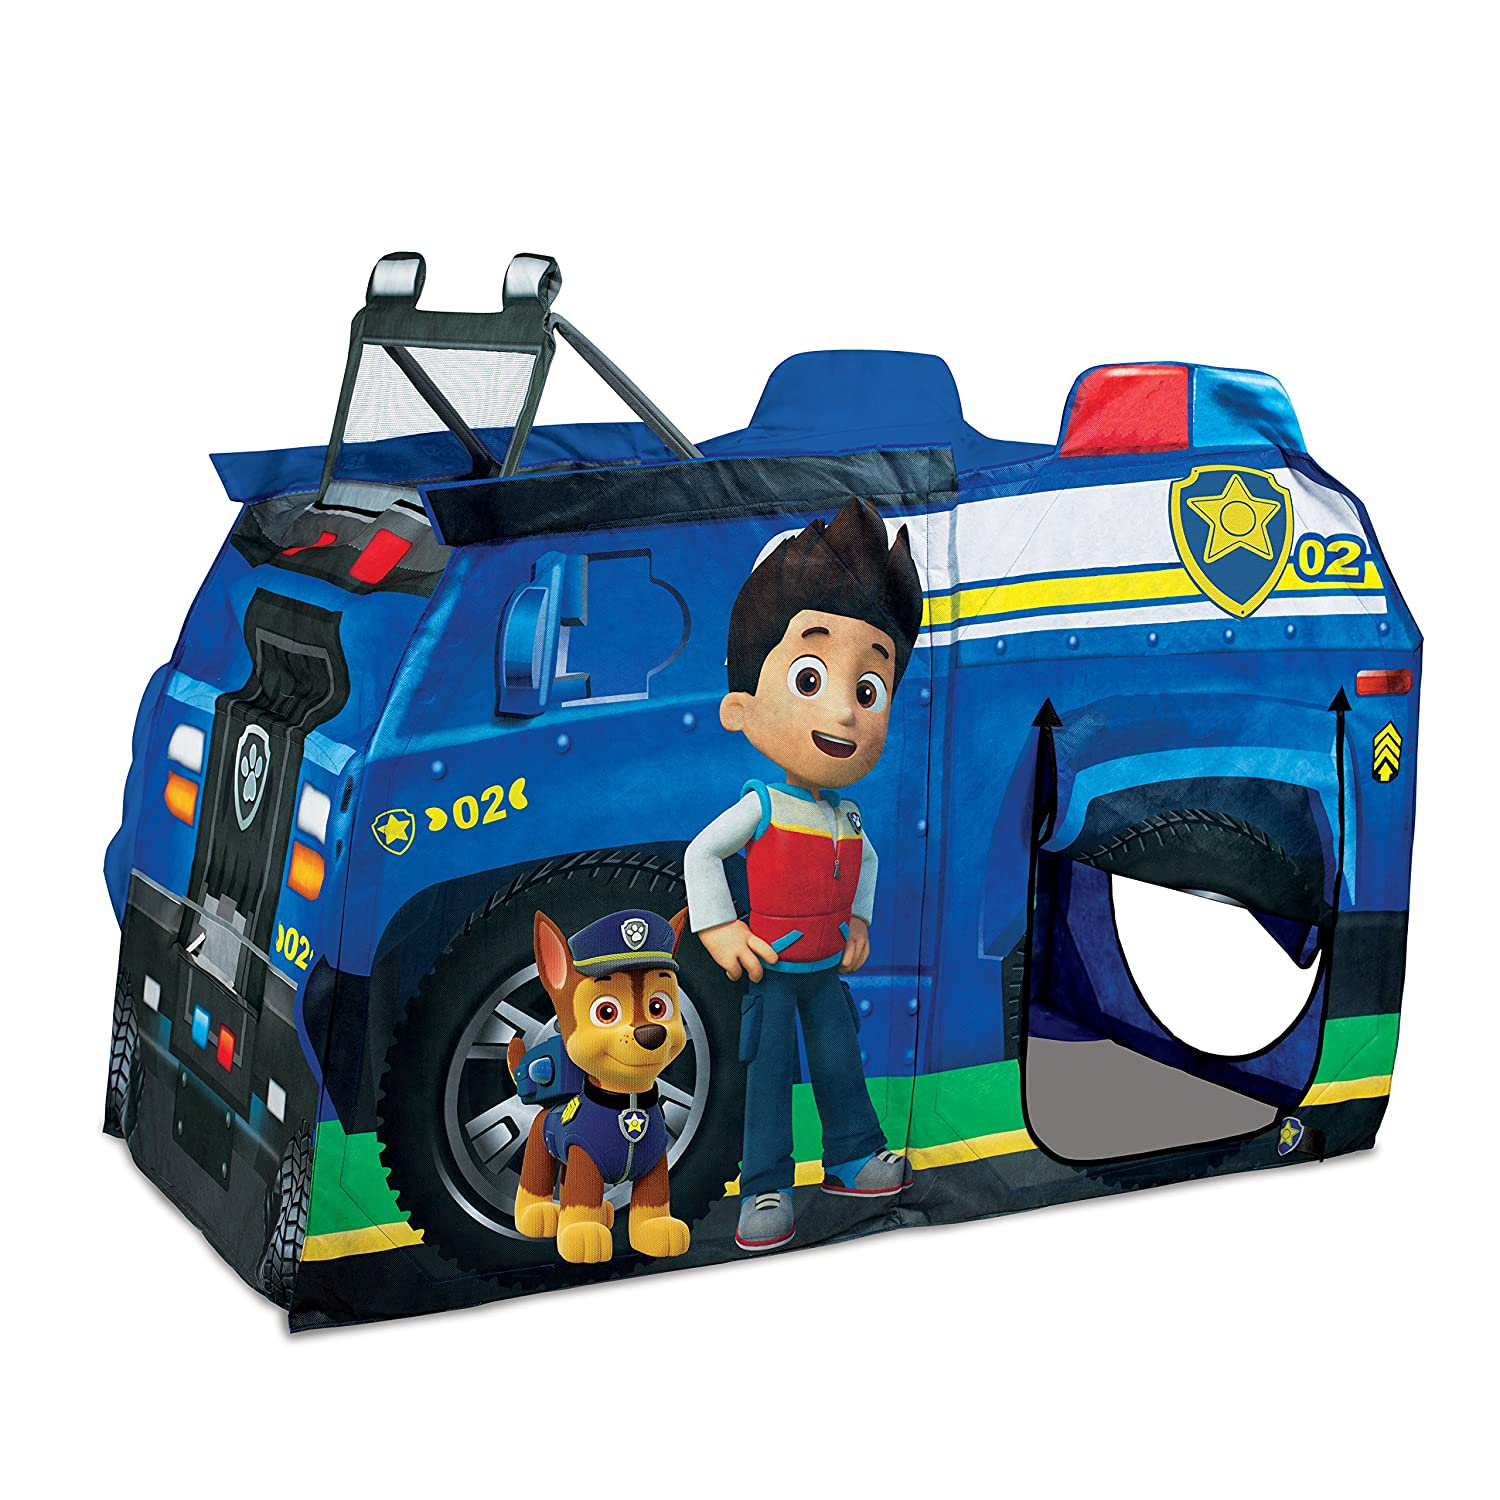 best sneakers f572a 6ac05 Playhut Paw Patrol Chase Police Truck Playhouse